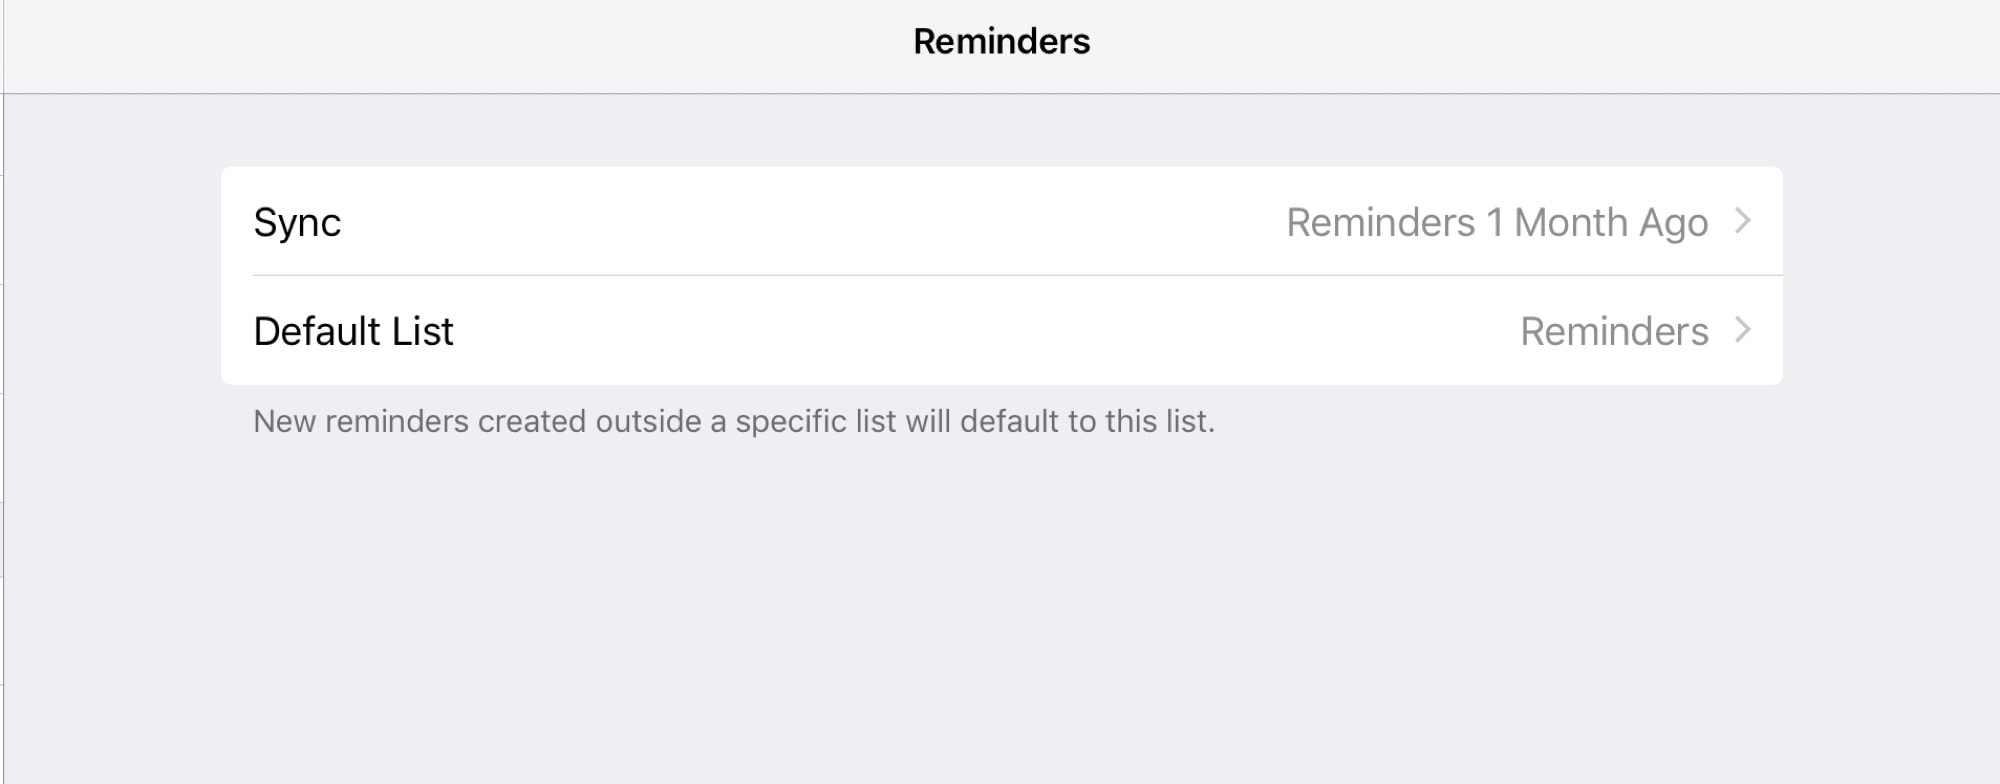 iOS 12's pitiful preference settings.